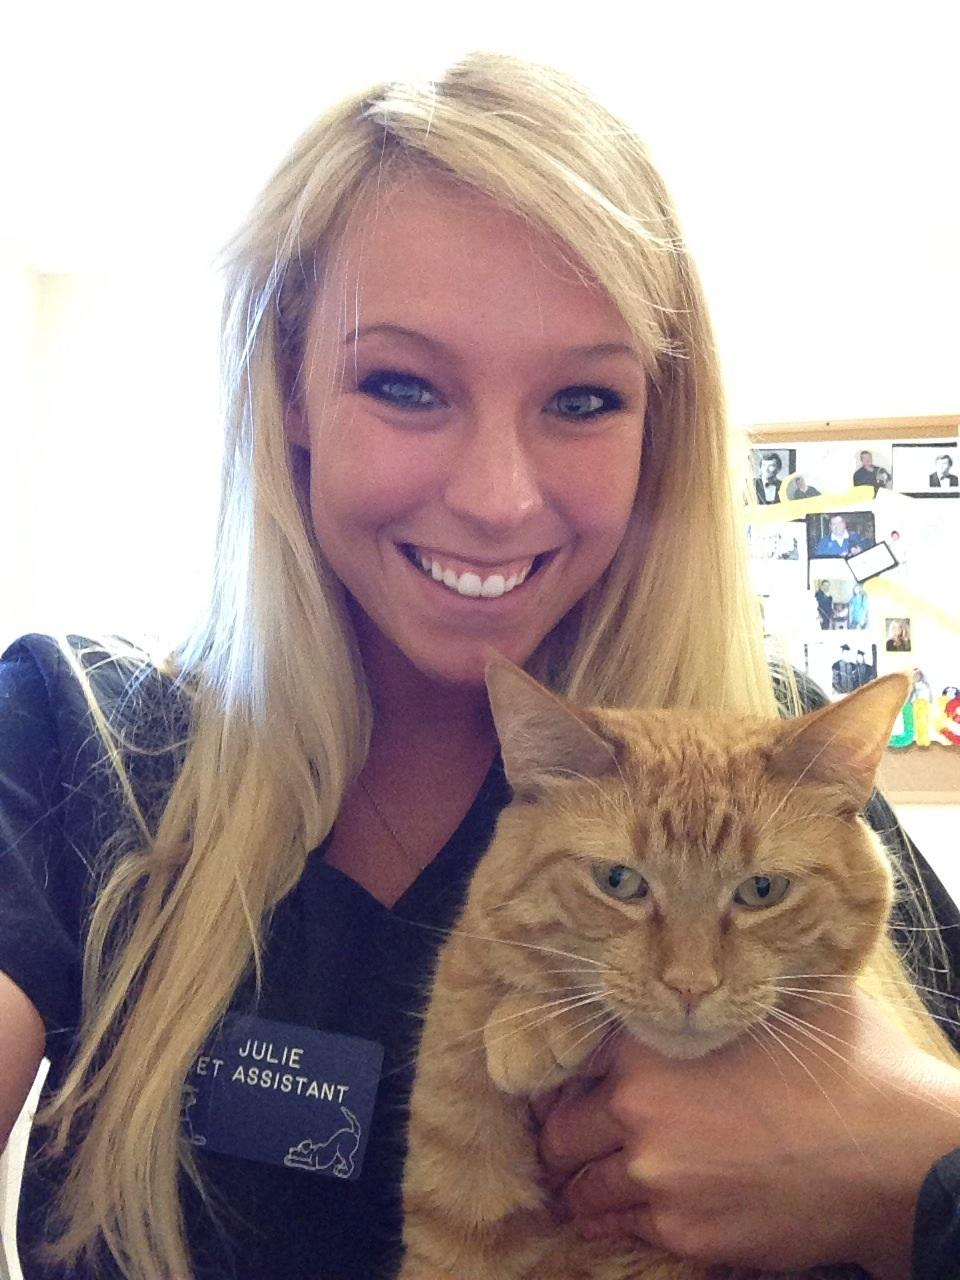 Julie, Veterinary Assistant